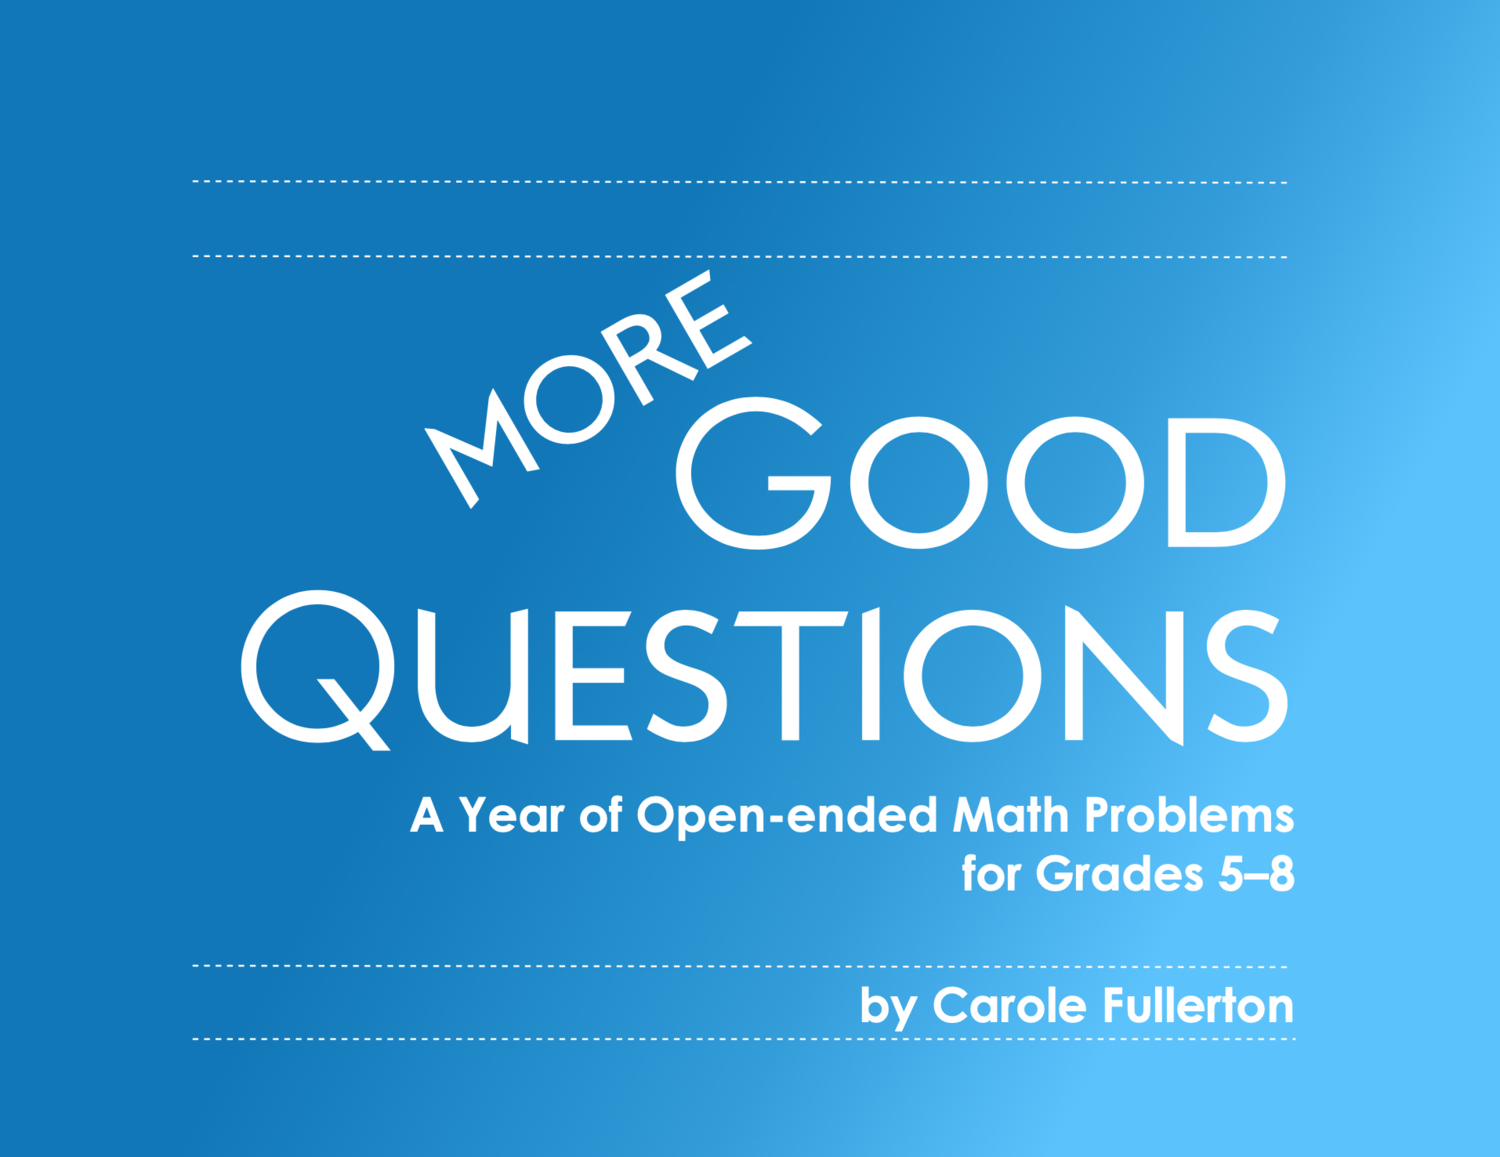 MORE Good Questions: A Year of Open-ended Math Problems for Grades 5-8